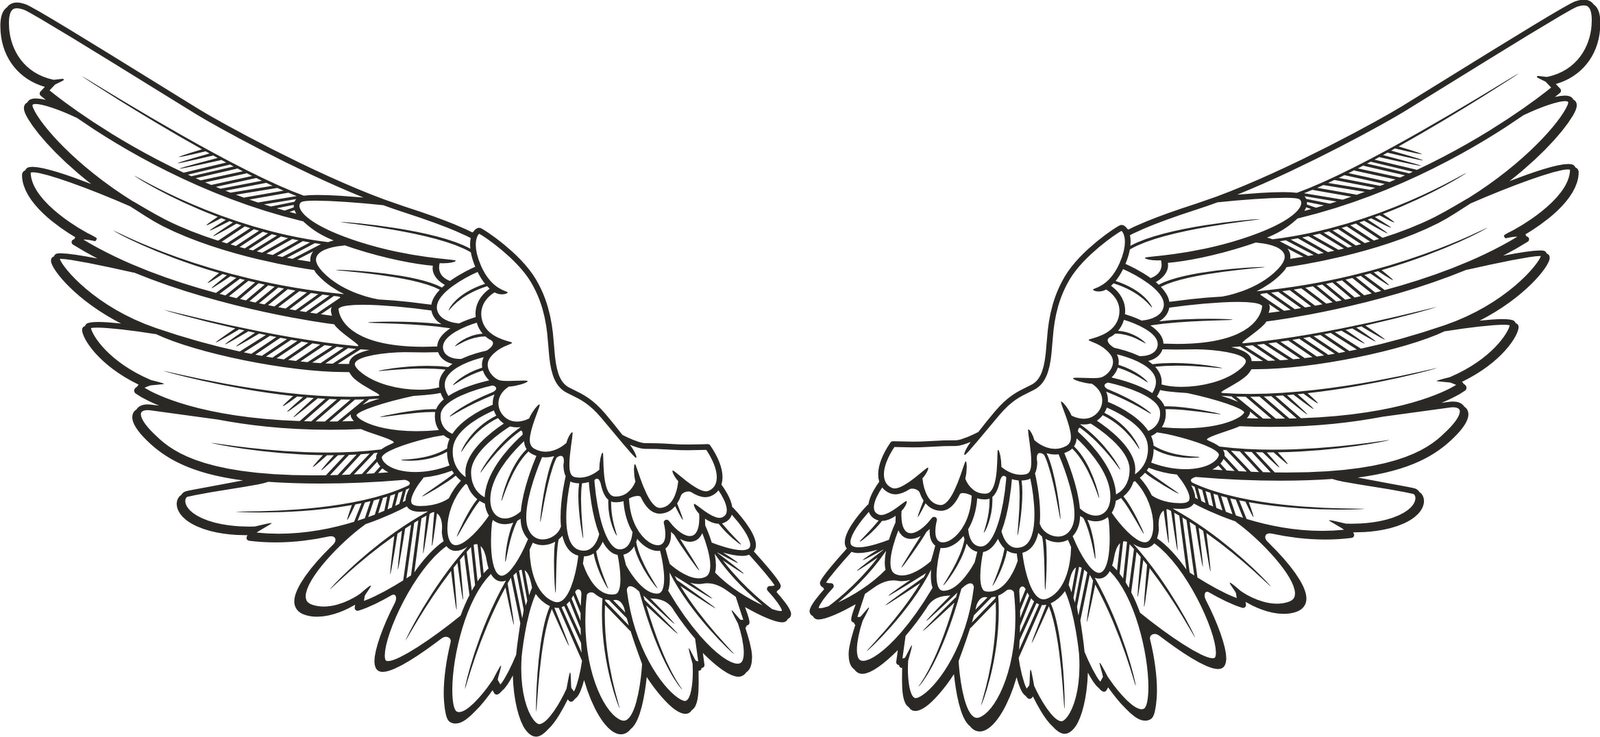 Wing clipart. R minecraft wings feathers